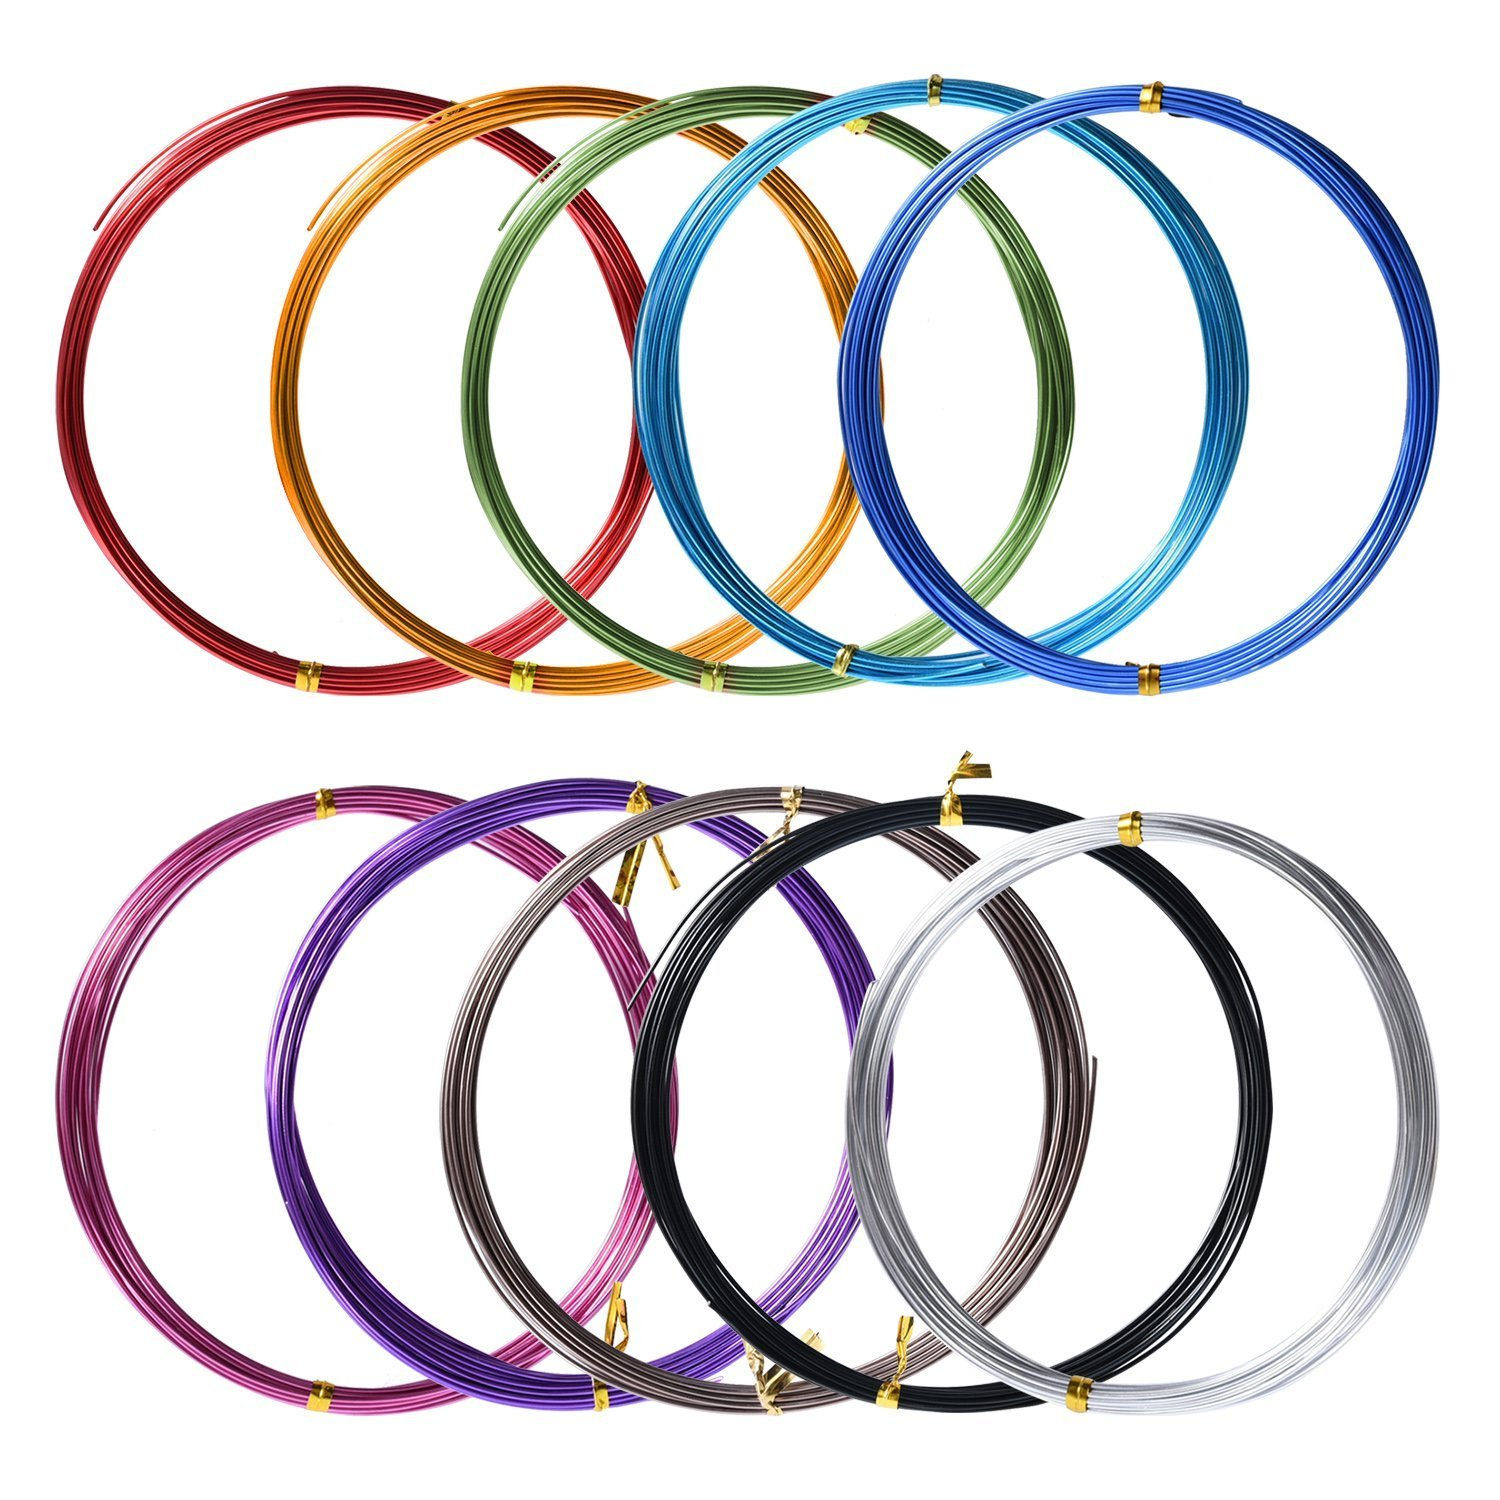 10 Rolls Assorted Colors Aluminium Craft Wire for DIY Craft, 1 mm in Diameter, 5 Meters Long Satinior